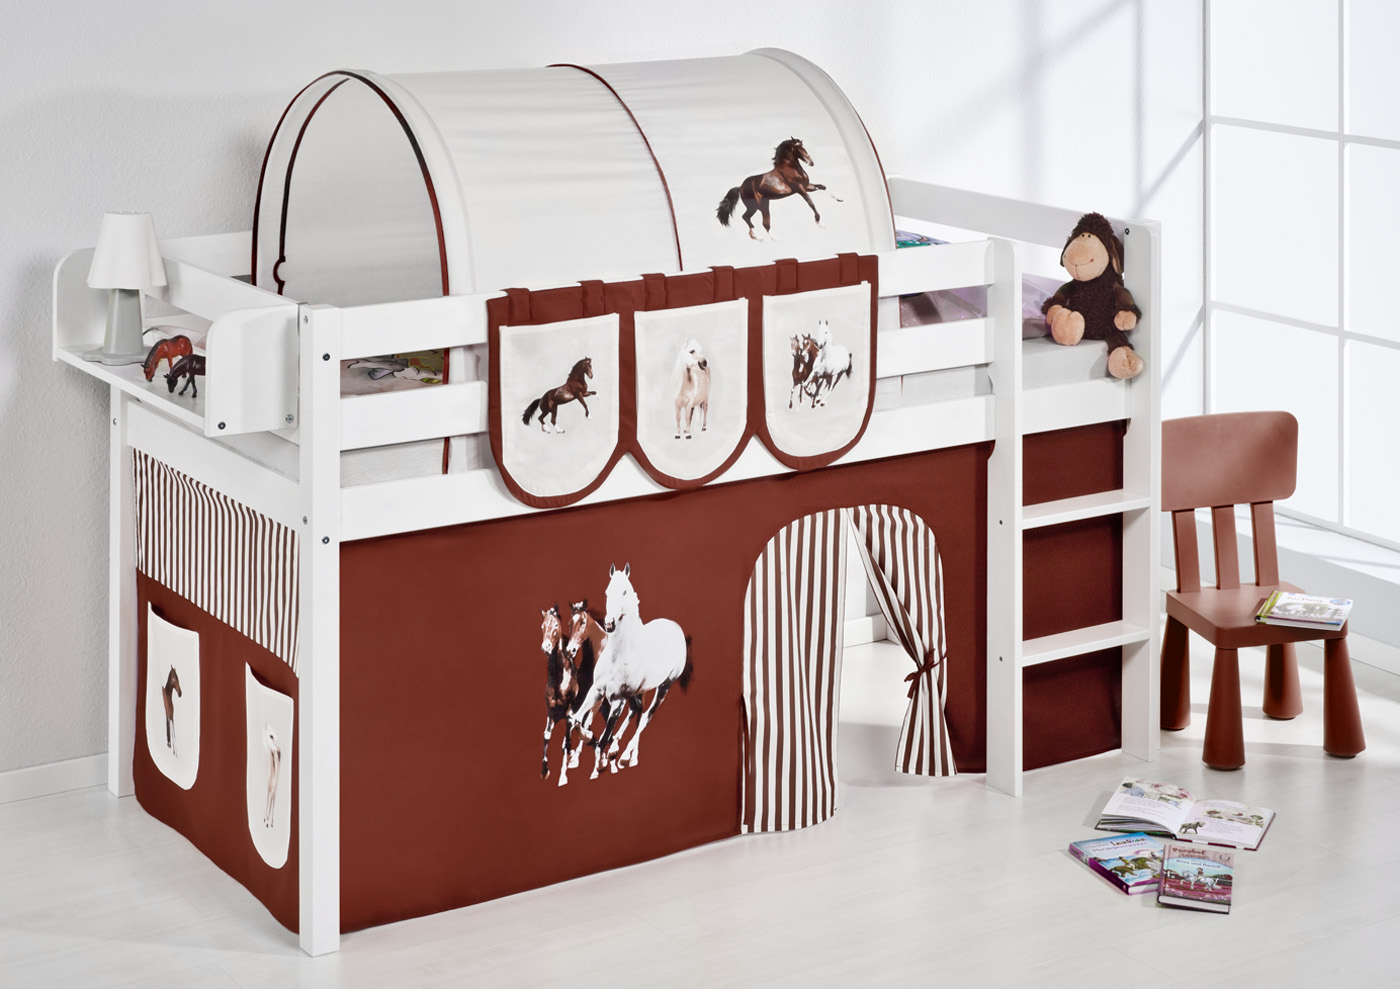 spielbett hochbett kinderbett kinder bett jelle vorhang. Black Bedroom Furniture Sets. Home Design Ideas